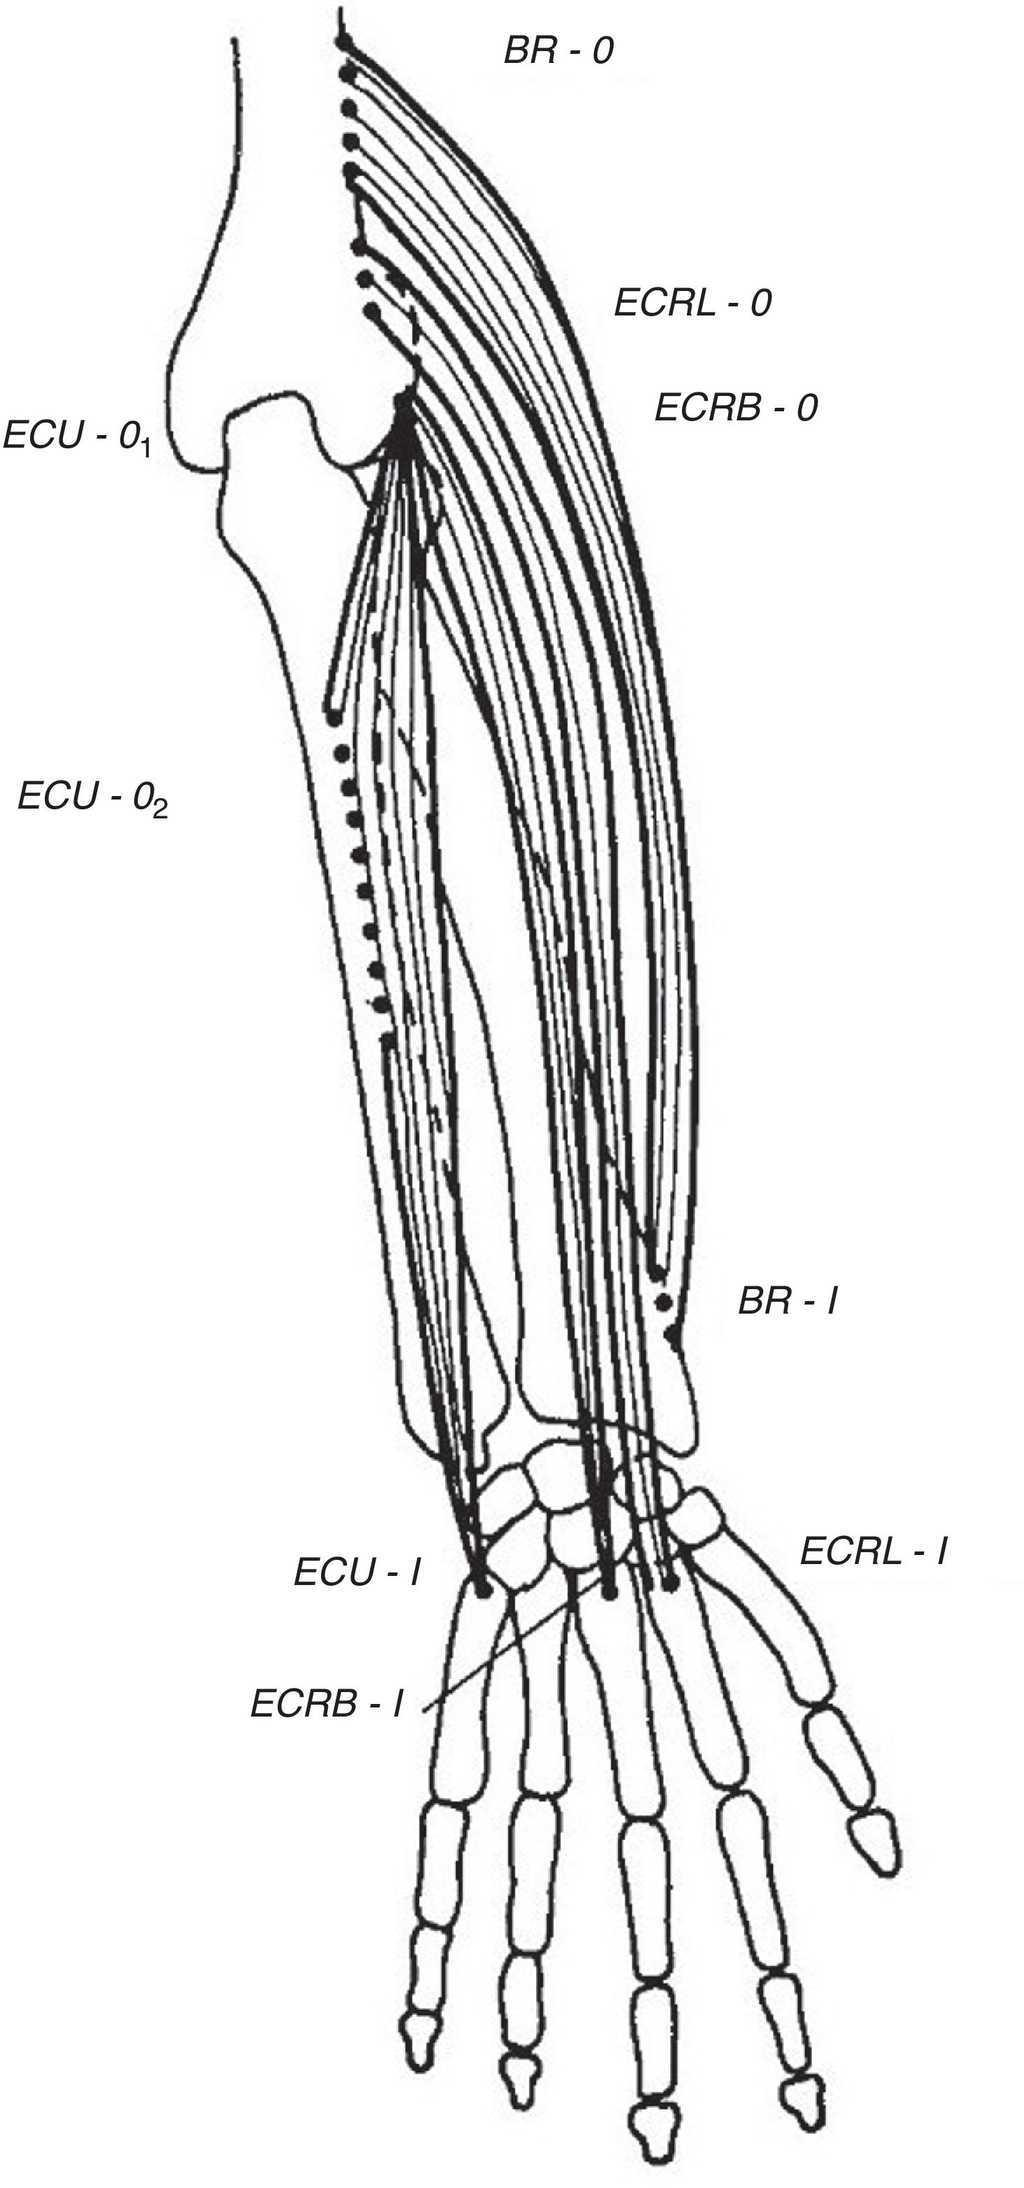 Clinical Anatomy Of The Elbow And Shoulder Reumatologa Clnica